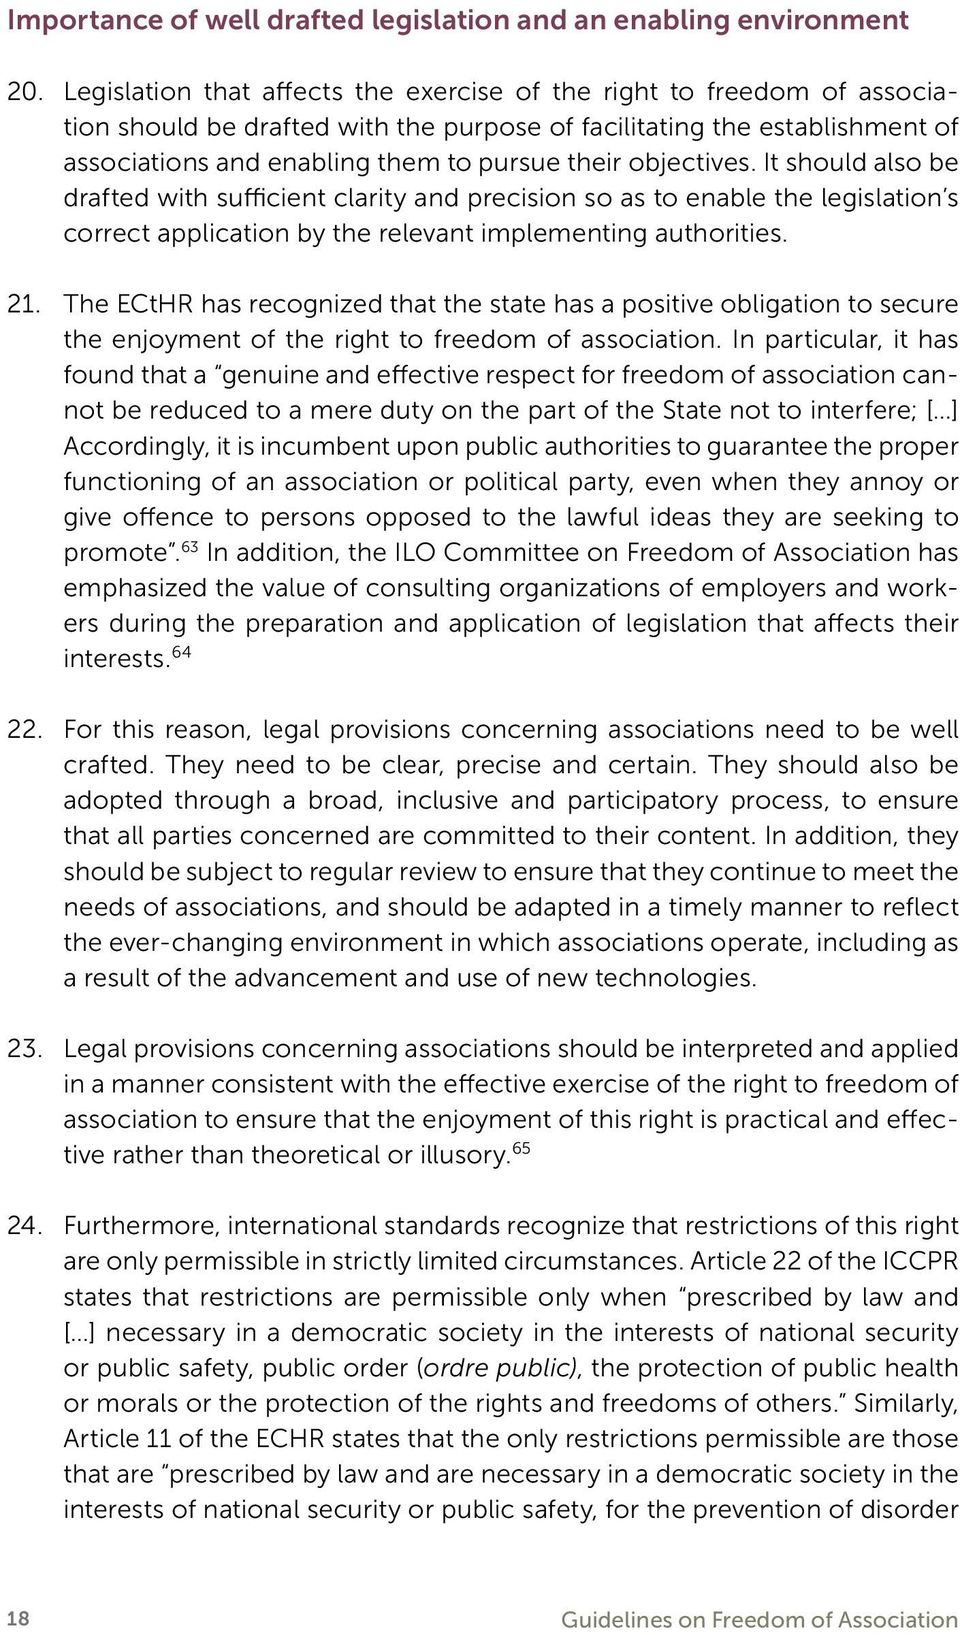 objectives. It should also be drafted with sufficient clarity and precision so as to enable the legislation s correct application by the relevant implementing authorities. 21.